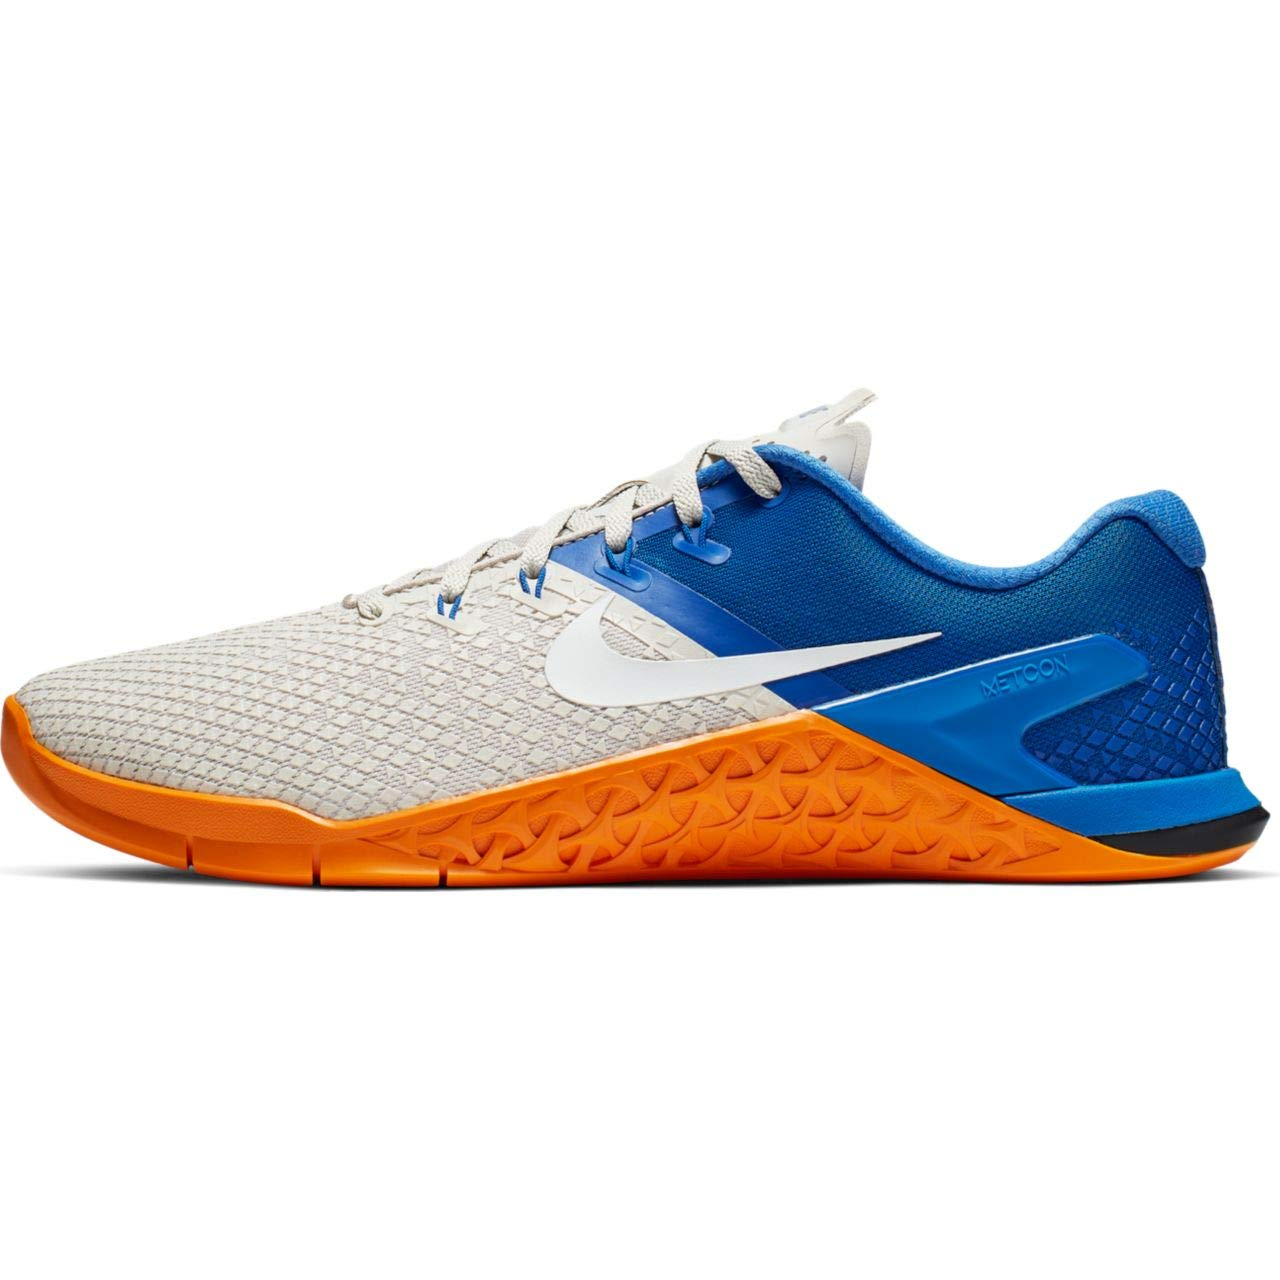 Nike Metcon 4 XD Men's Training Shoe Light Bone/White-Game Royal-Orange Peel 7.5